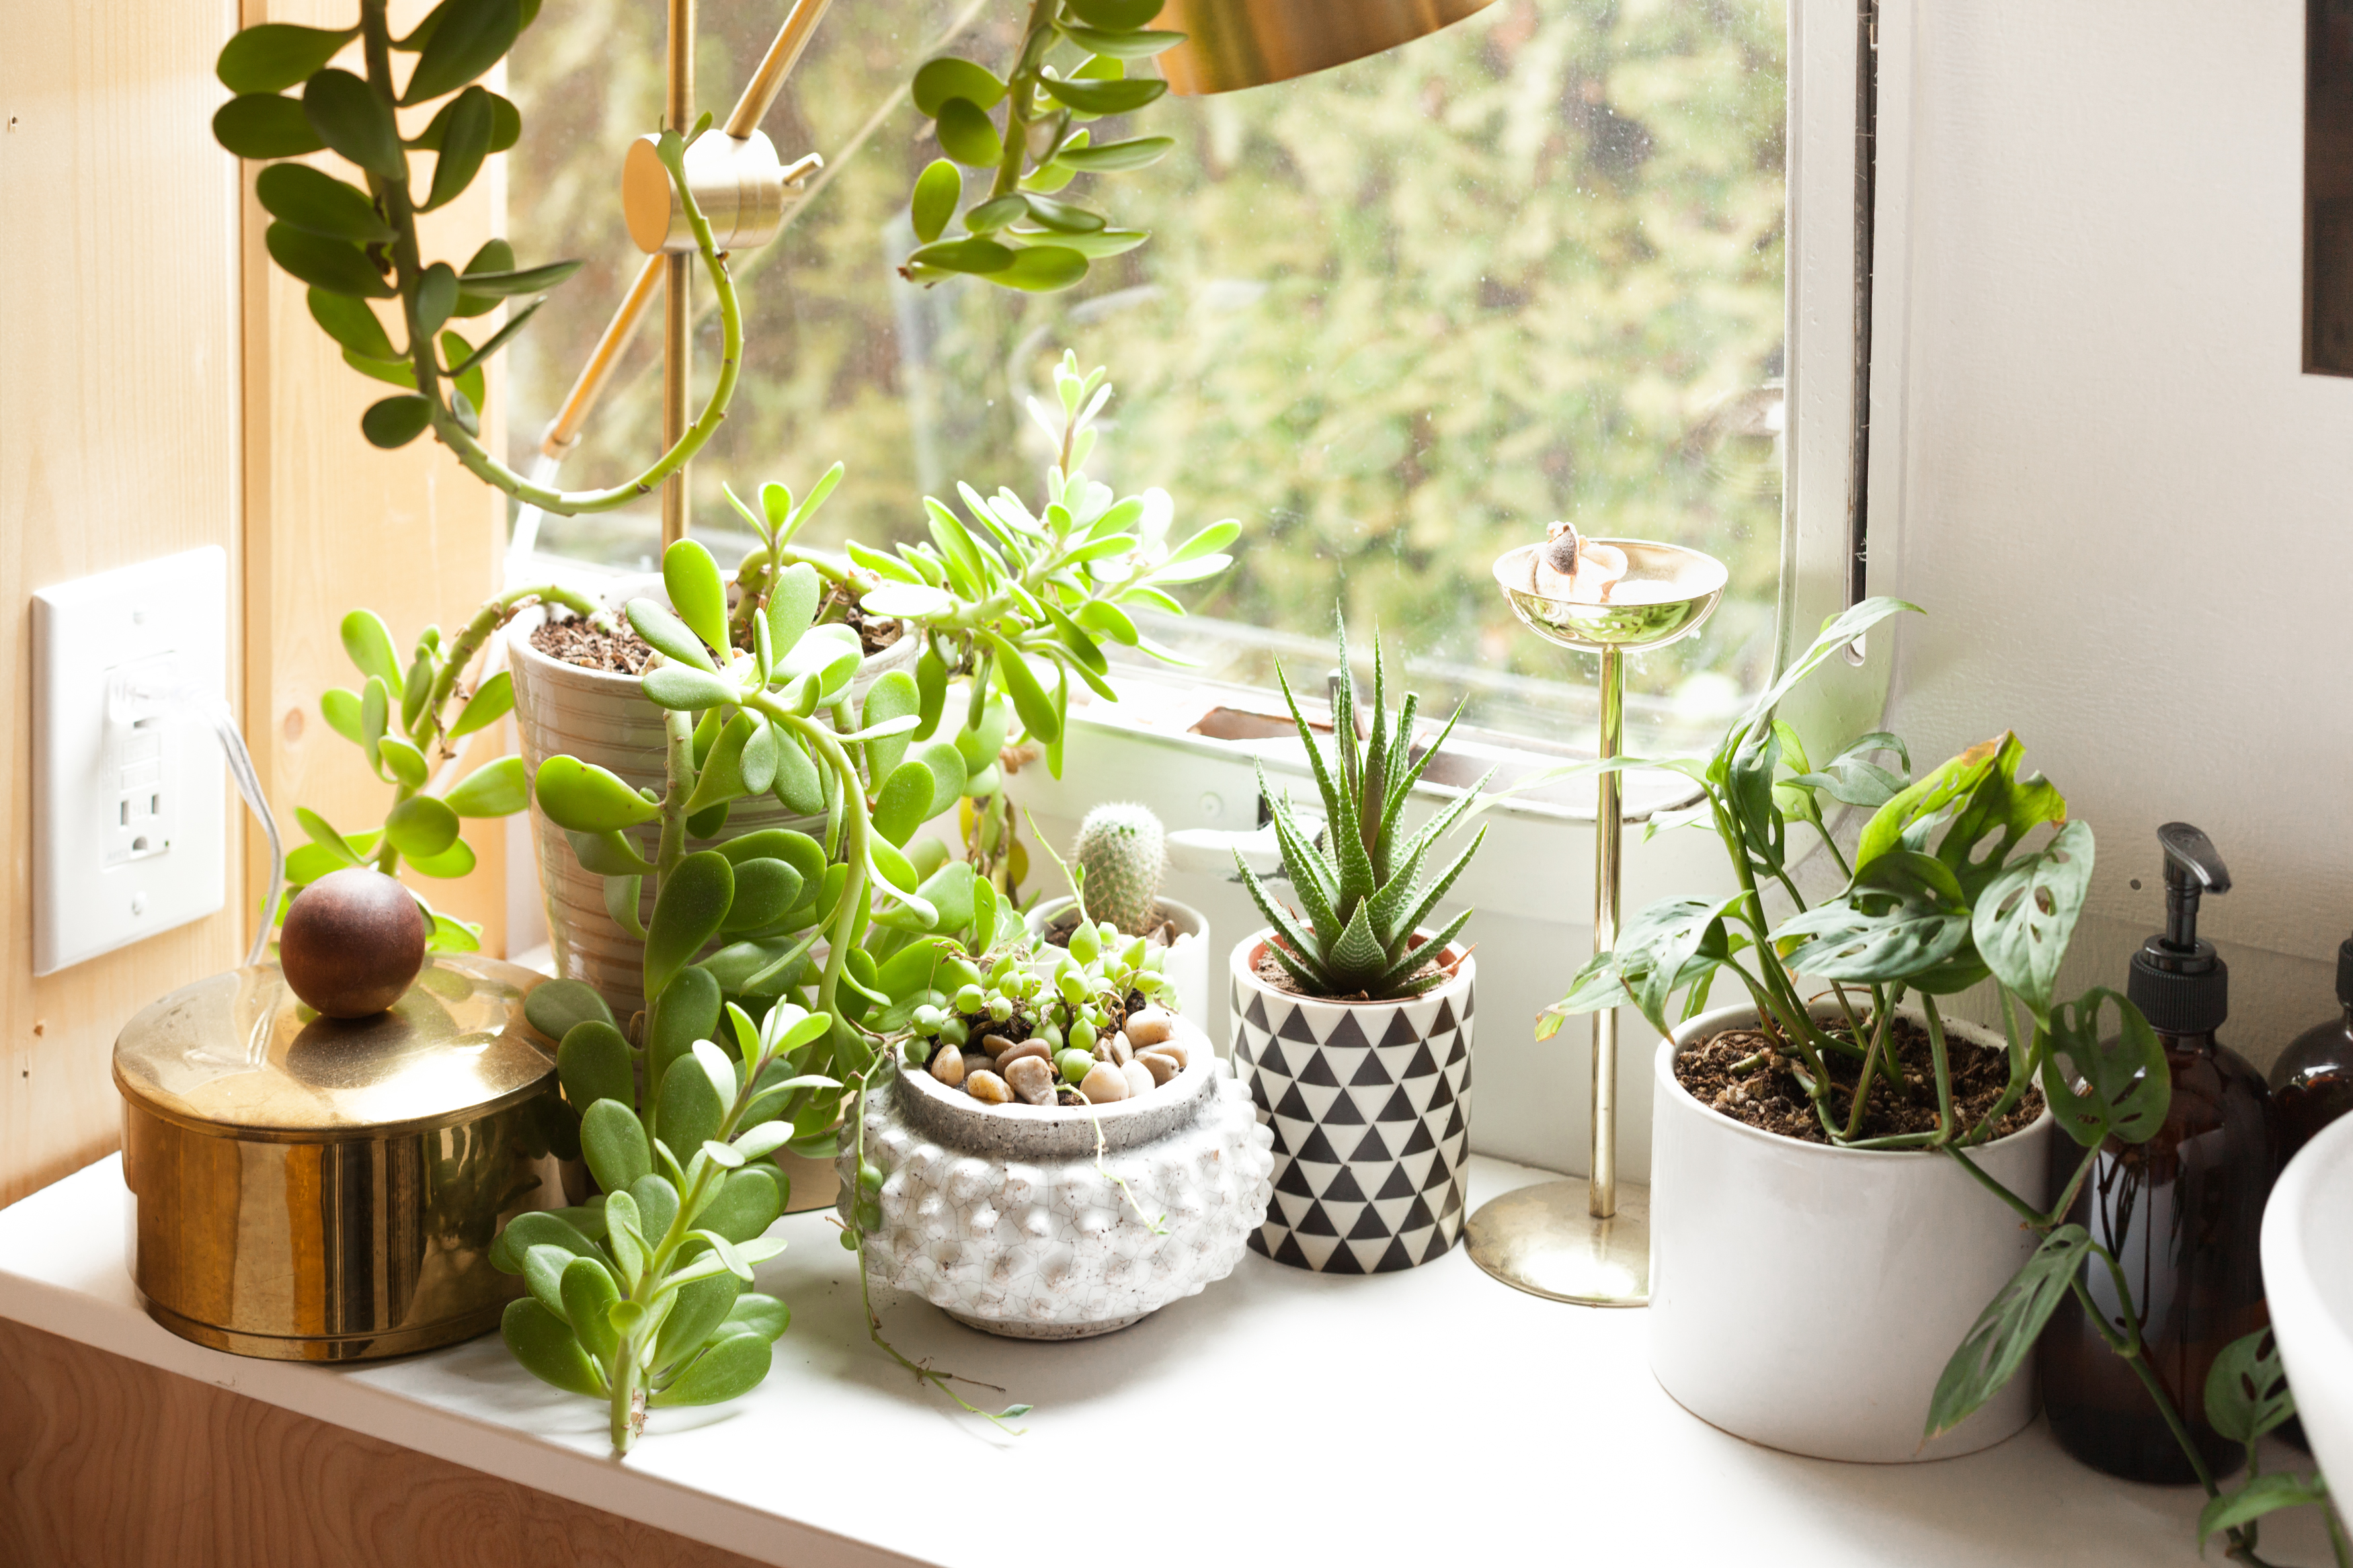 Budget-Friendly Sources for Buying Plants Online | Apartment